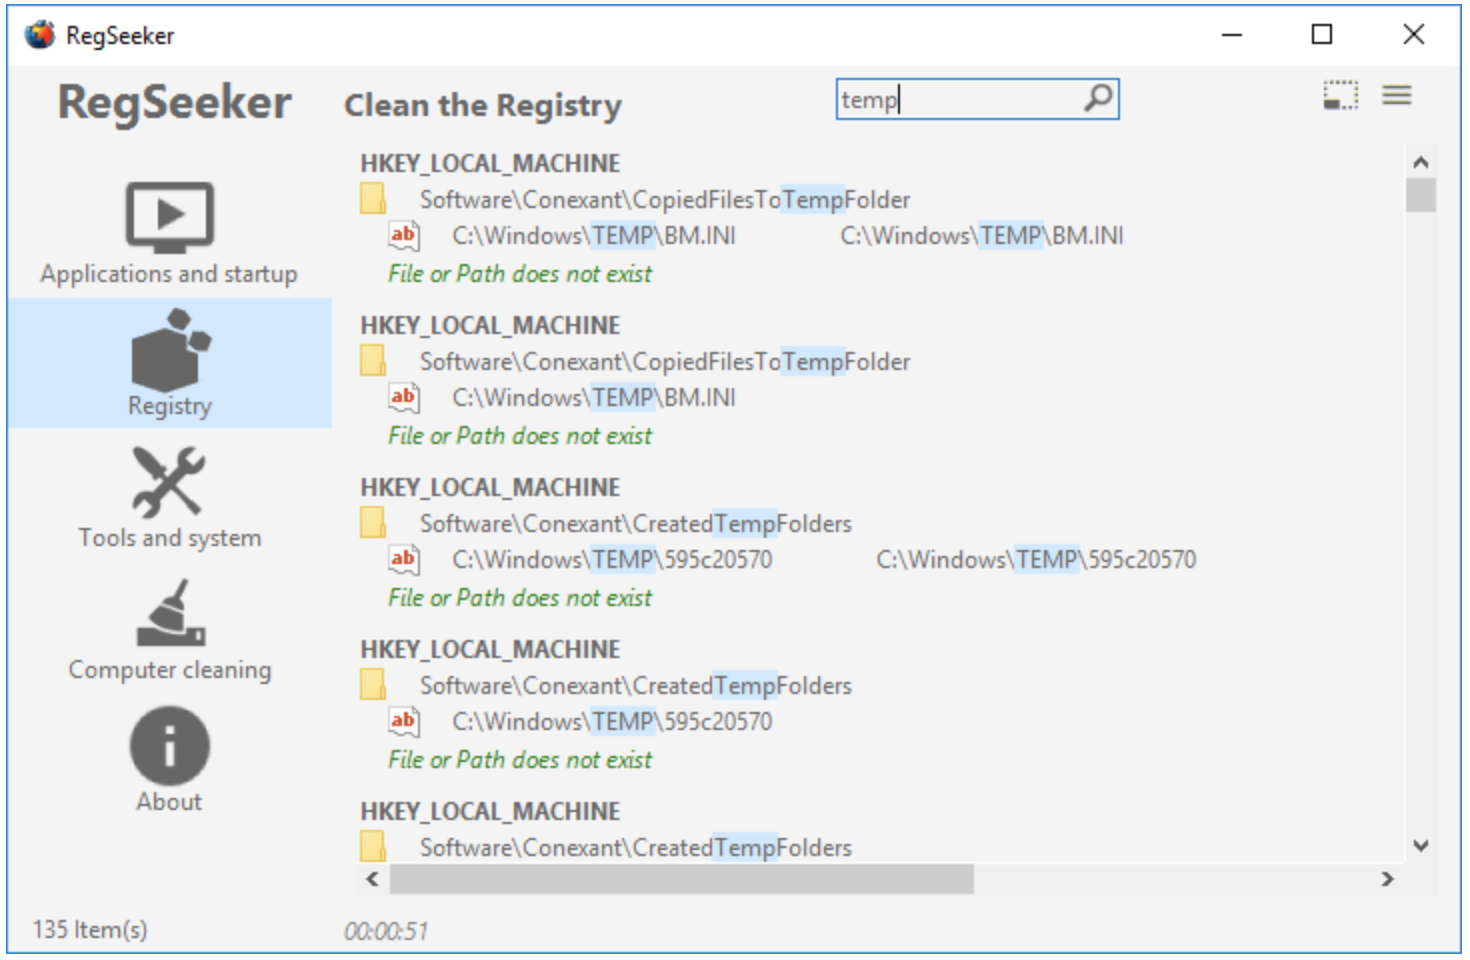 RegSeeker Windows Registry Cleaner - Best Free Windows Registry Cleaner Tool for PC